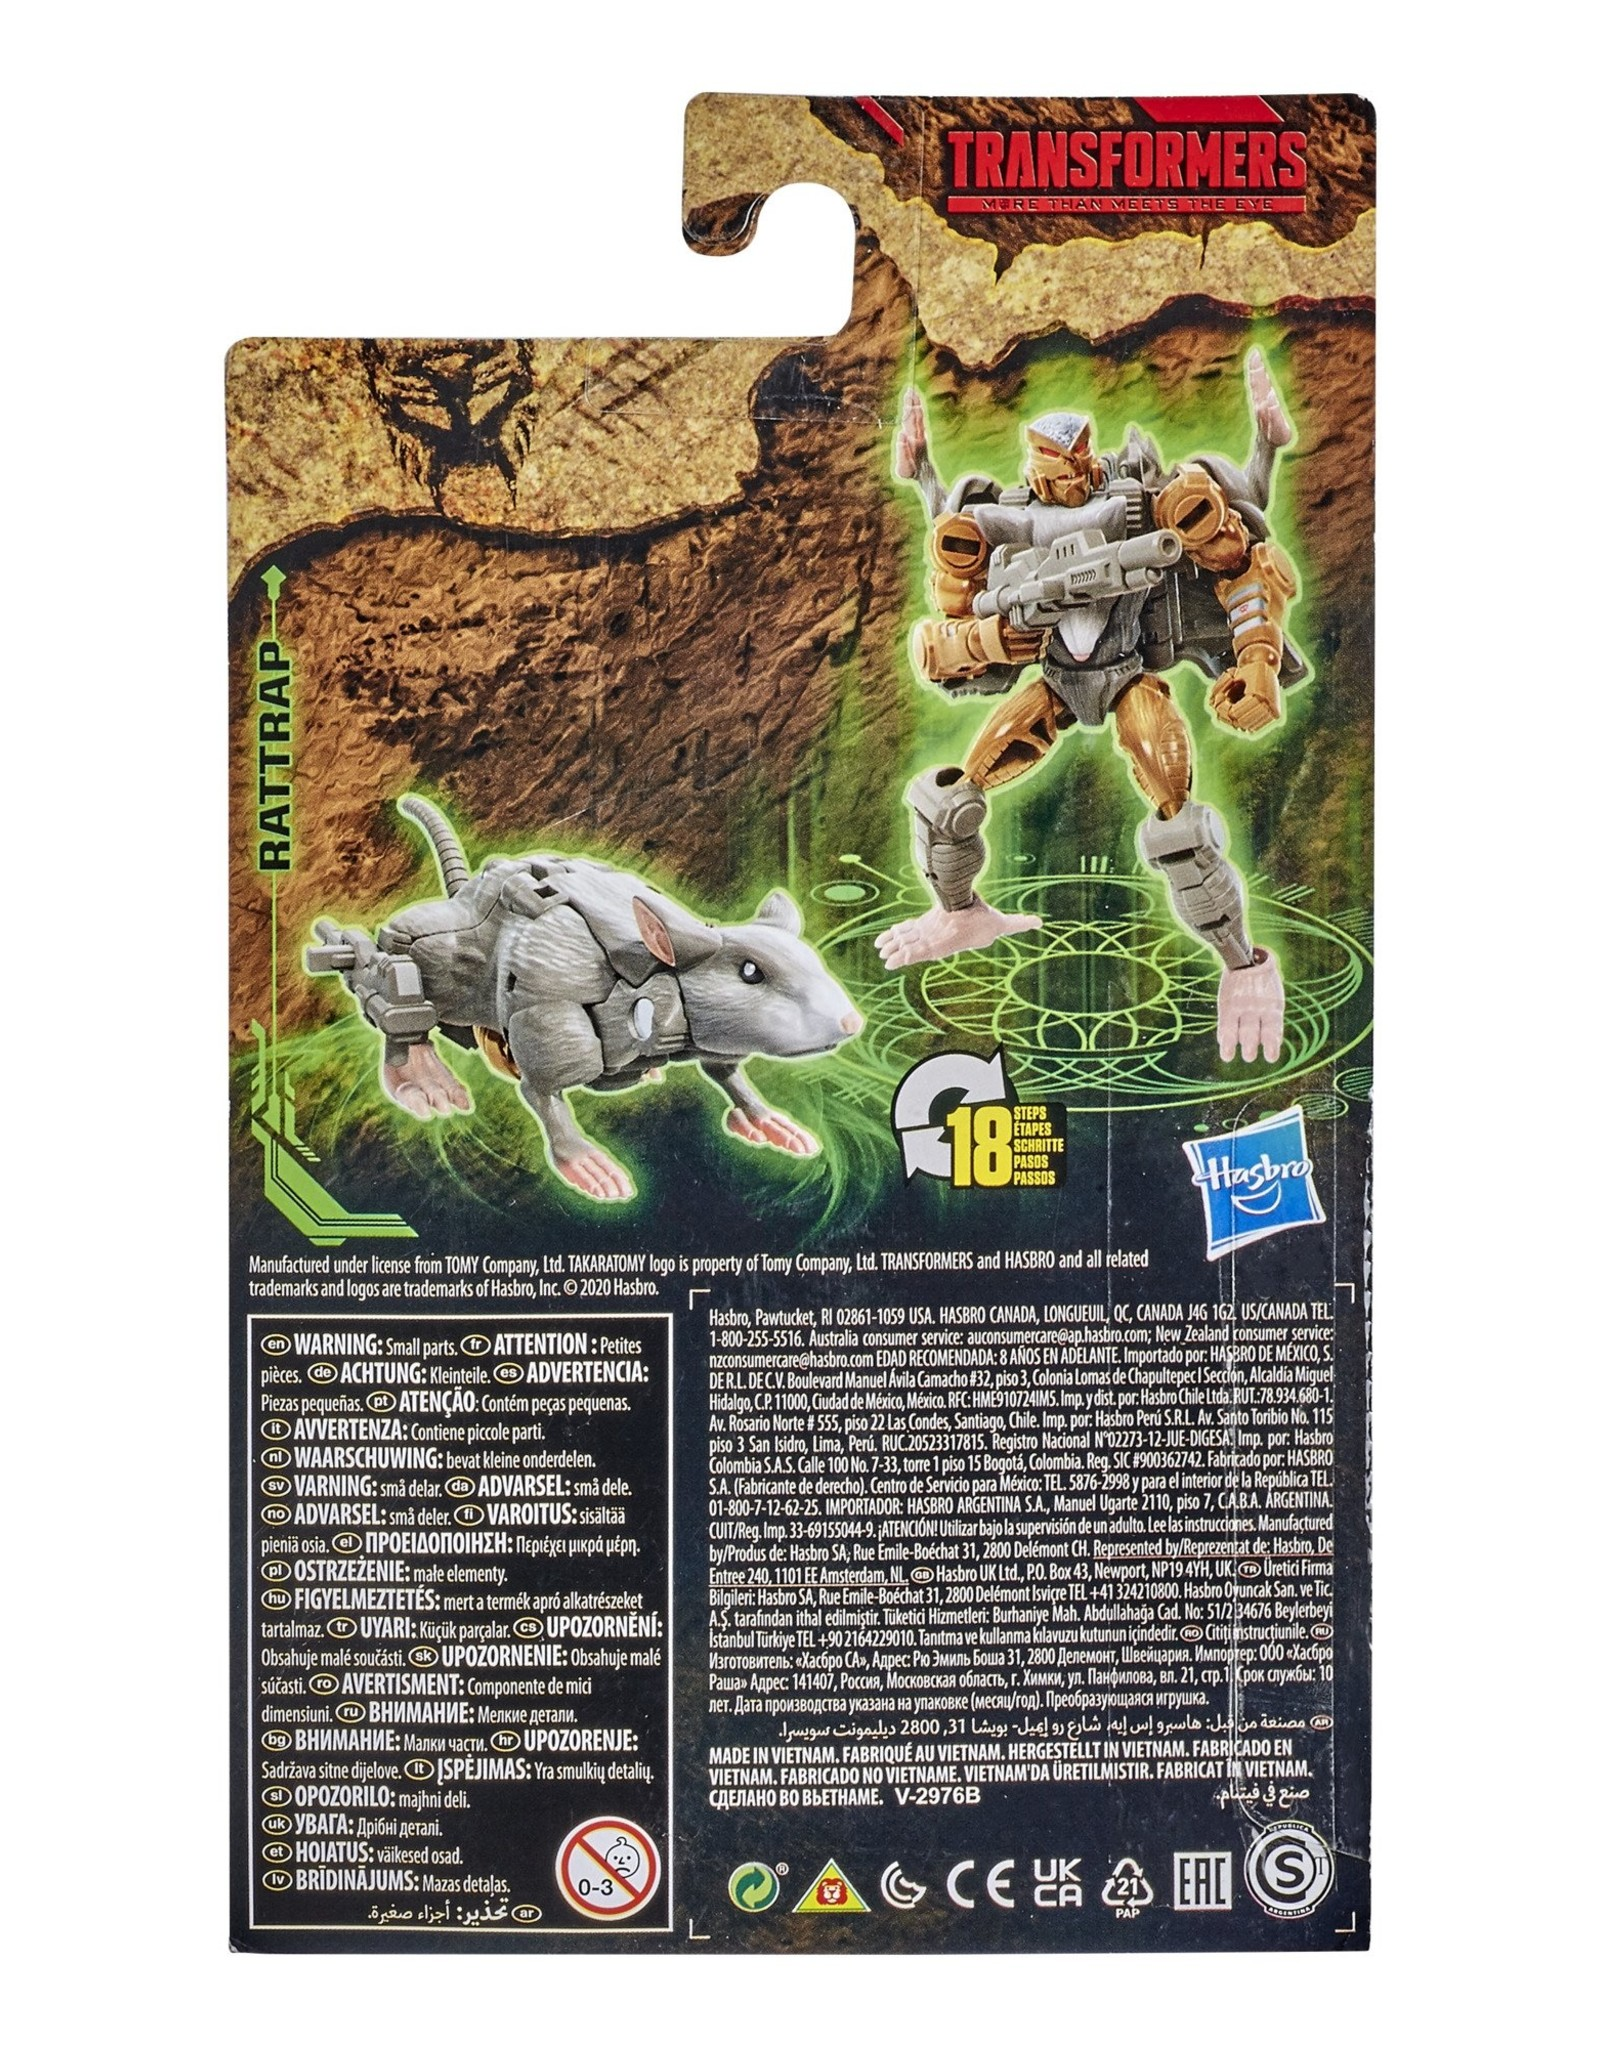 HASBRO Transformers Generations War for Cybertron: Kingdom Core Class WFC-K2 Rattrap